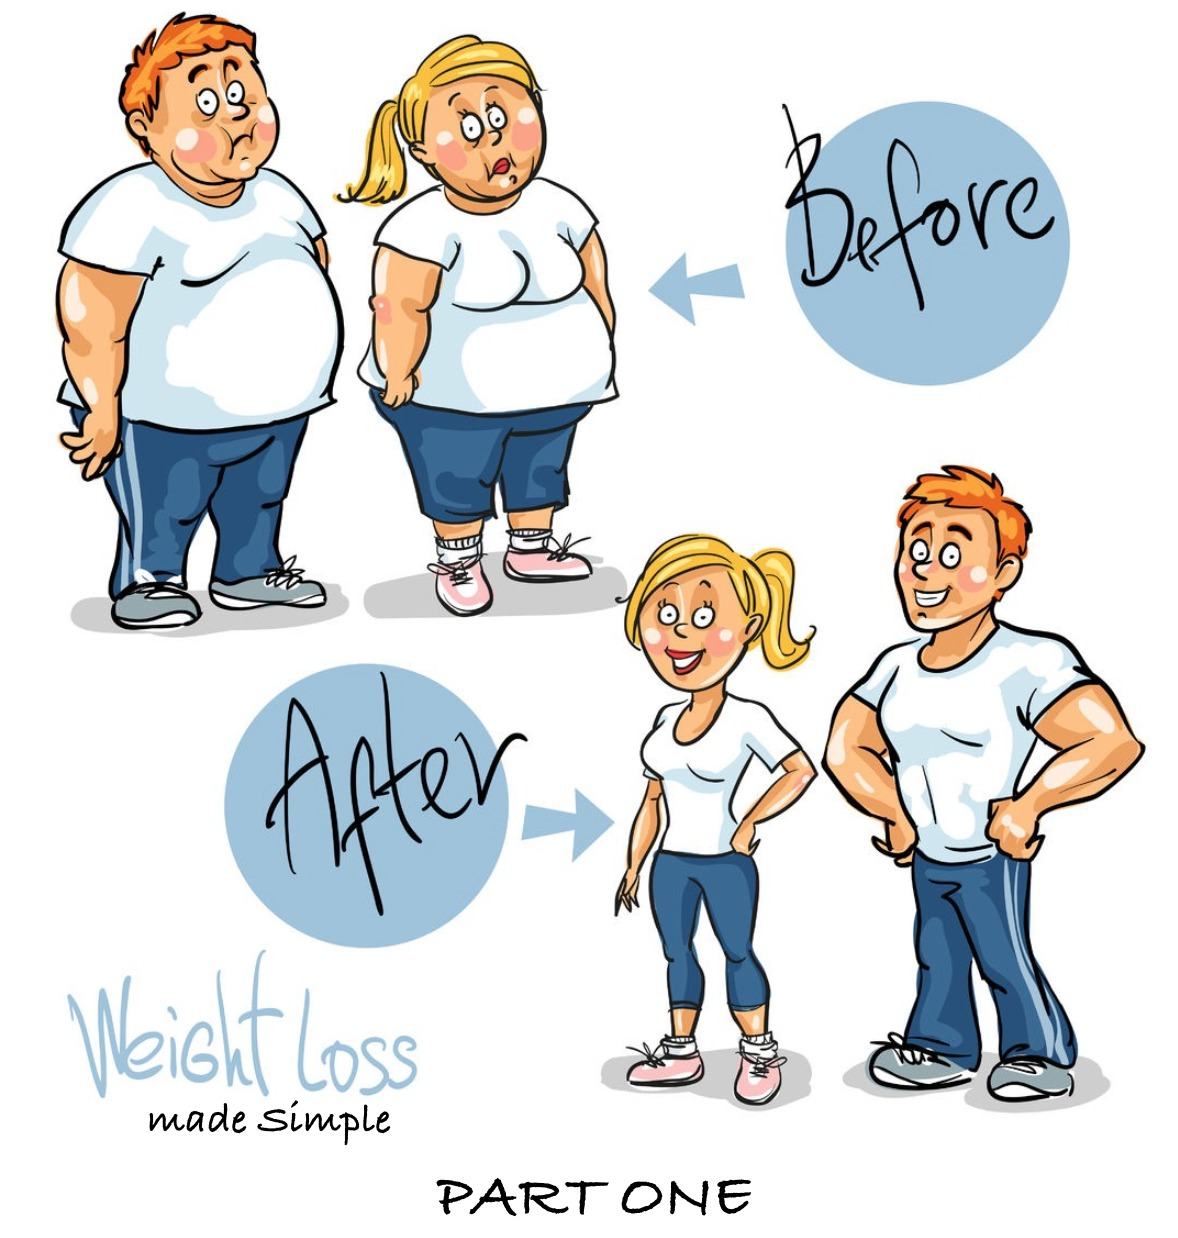 Weight Loss Made Simple – More Results with Less Effort (Part 1 of 2)